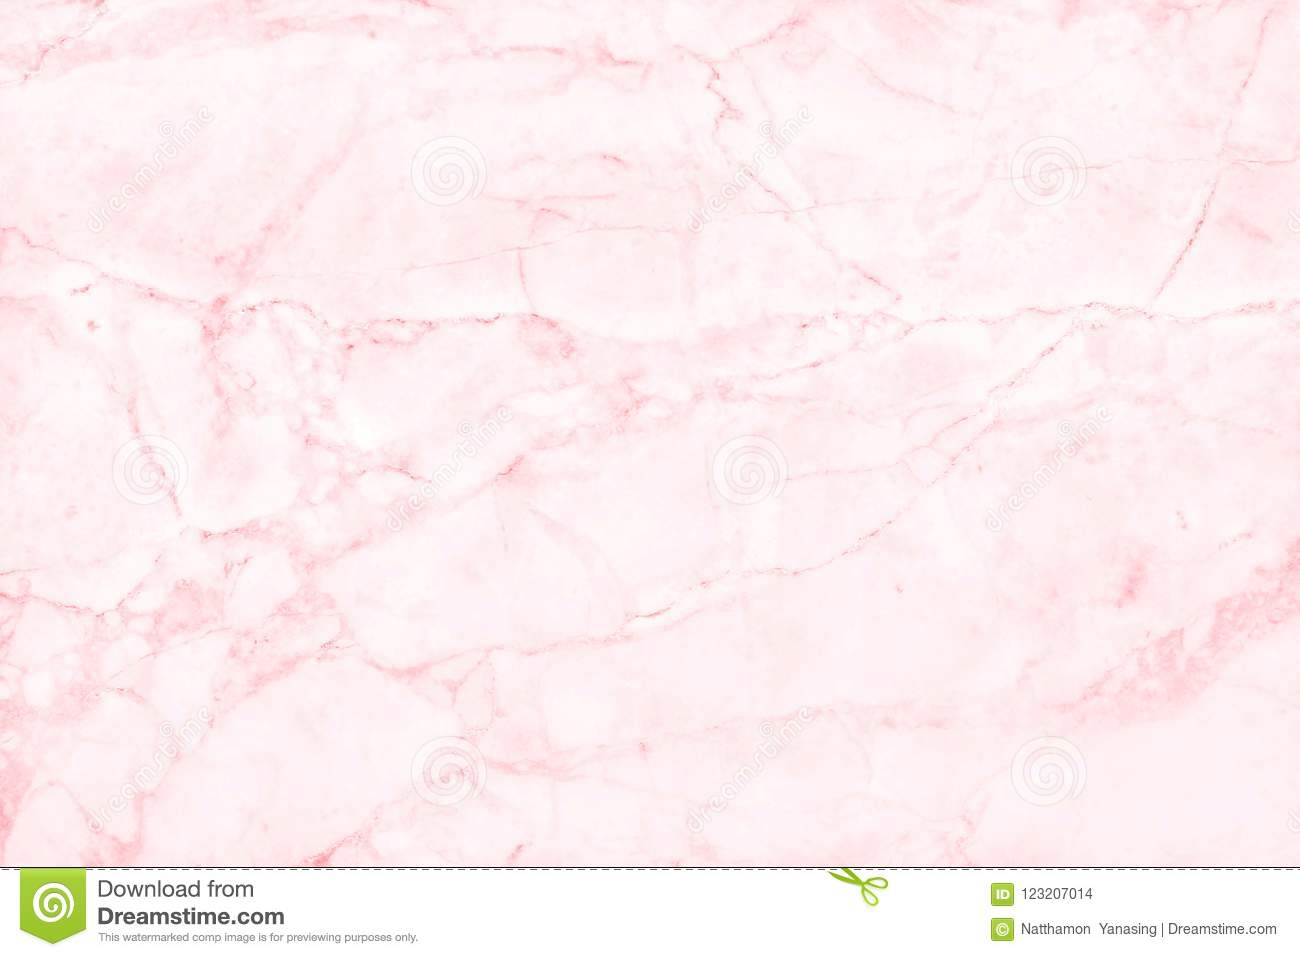 Pink Marble Texture Background With Detailed Structure High Resolution Bright And Luxurious Stock Photo Image Of Background Marble 123207014